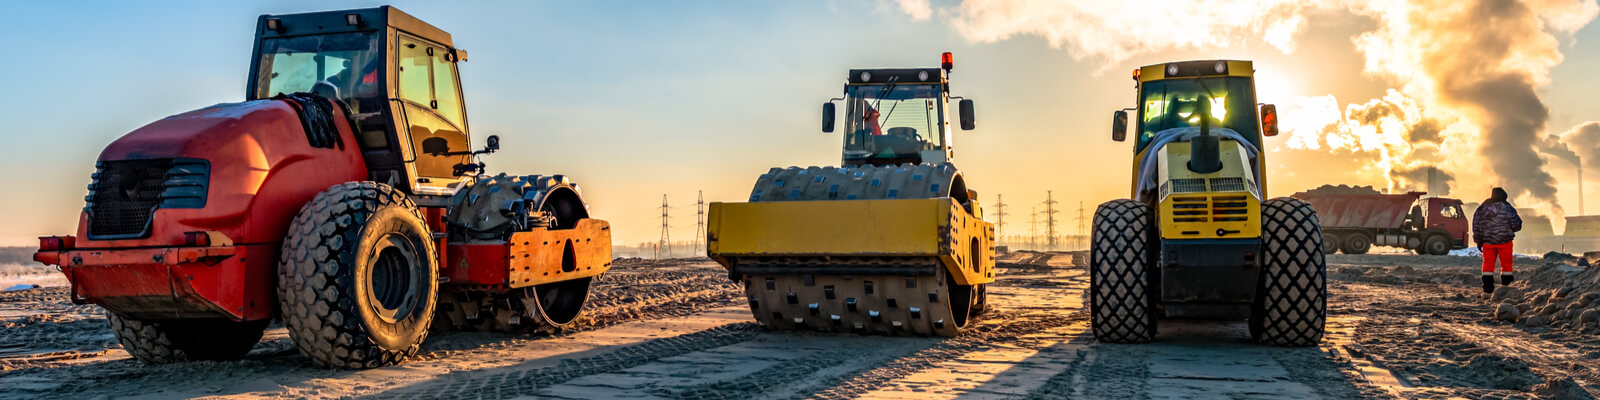 heavy equipment financing - feature image